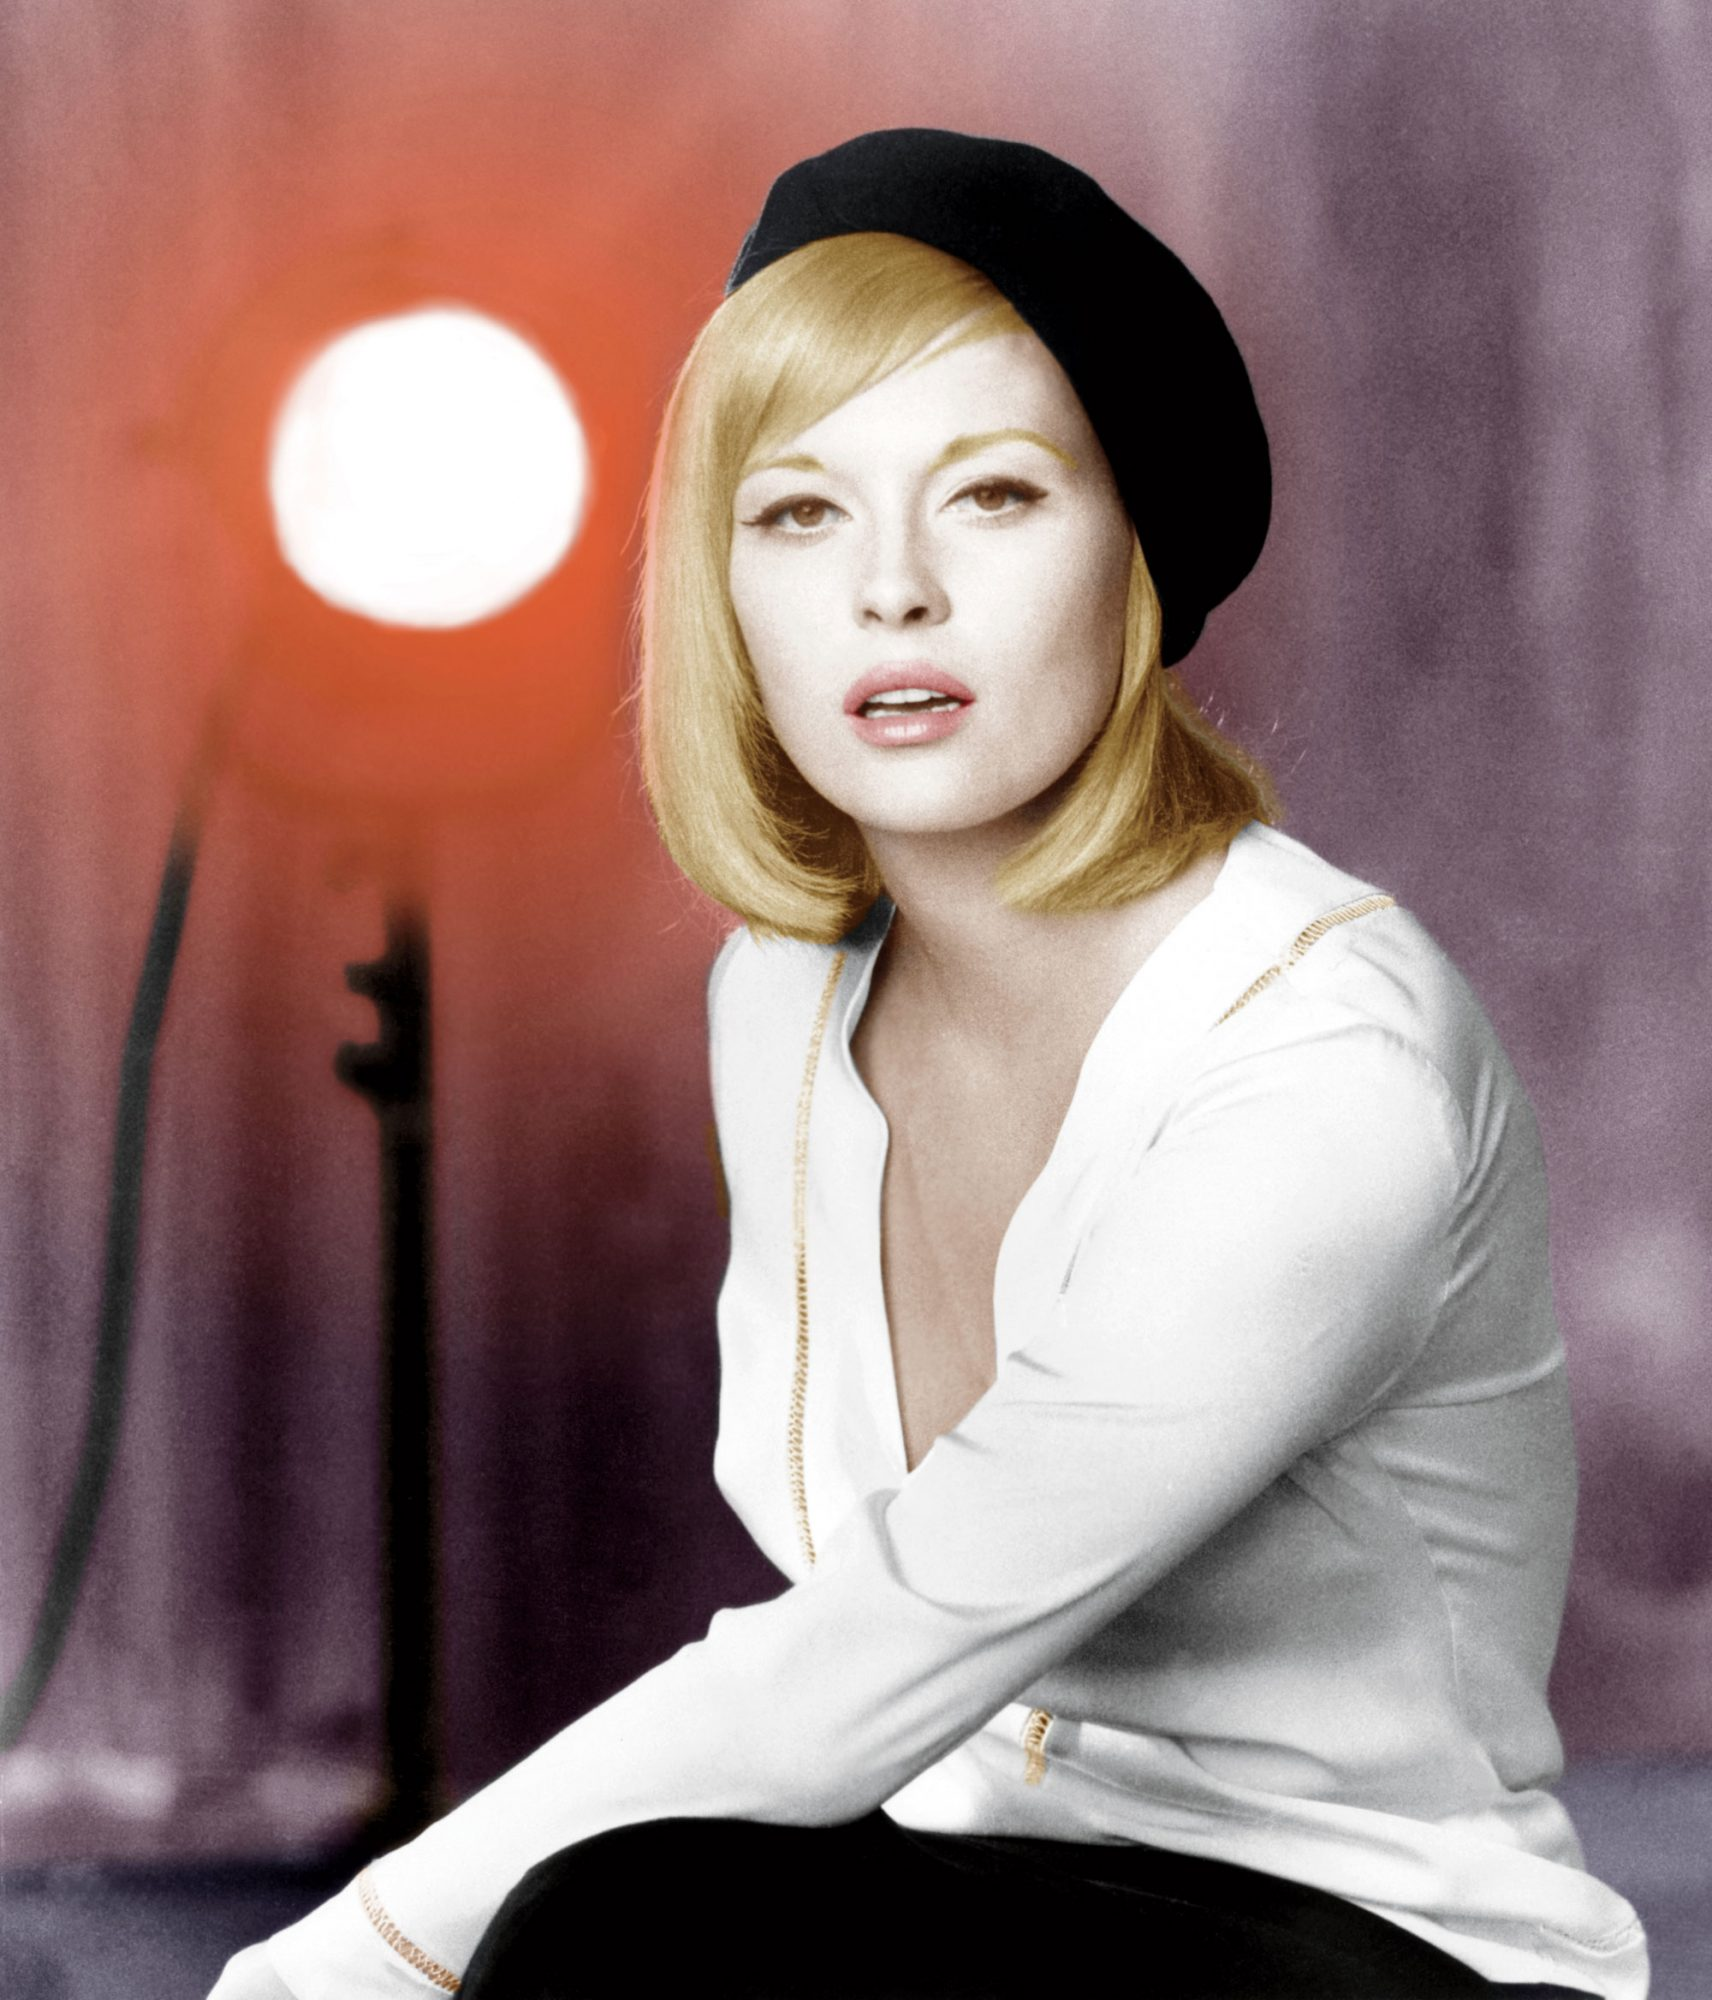 Go Sleek & Sultry with Inspiration from Faye Dunaway | Southern Living